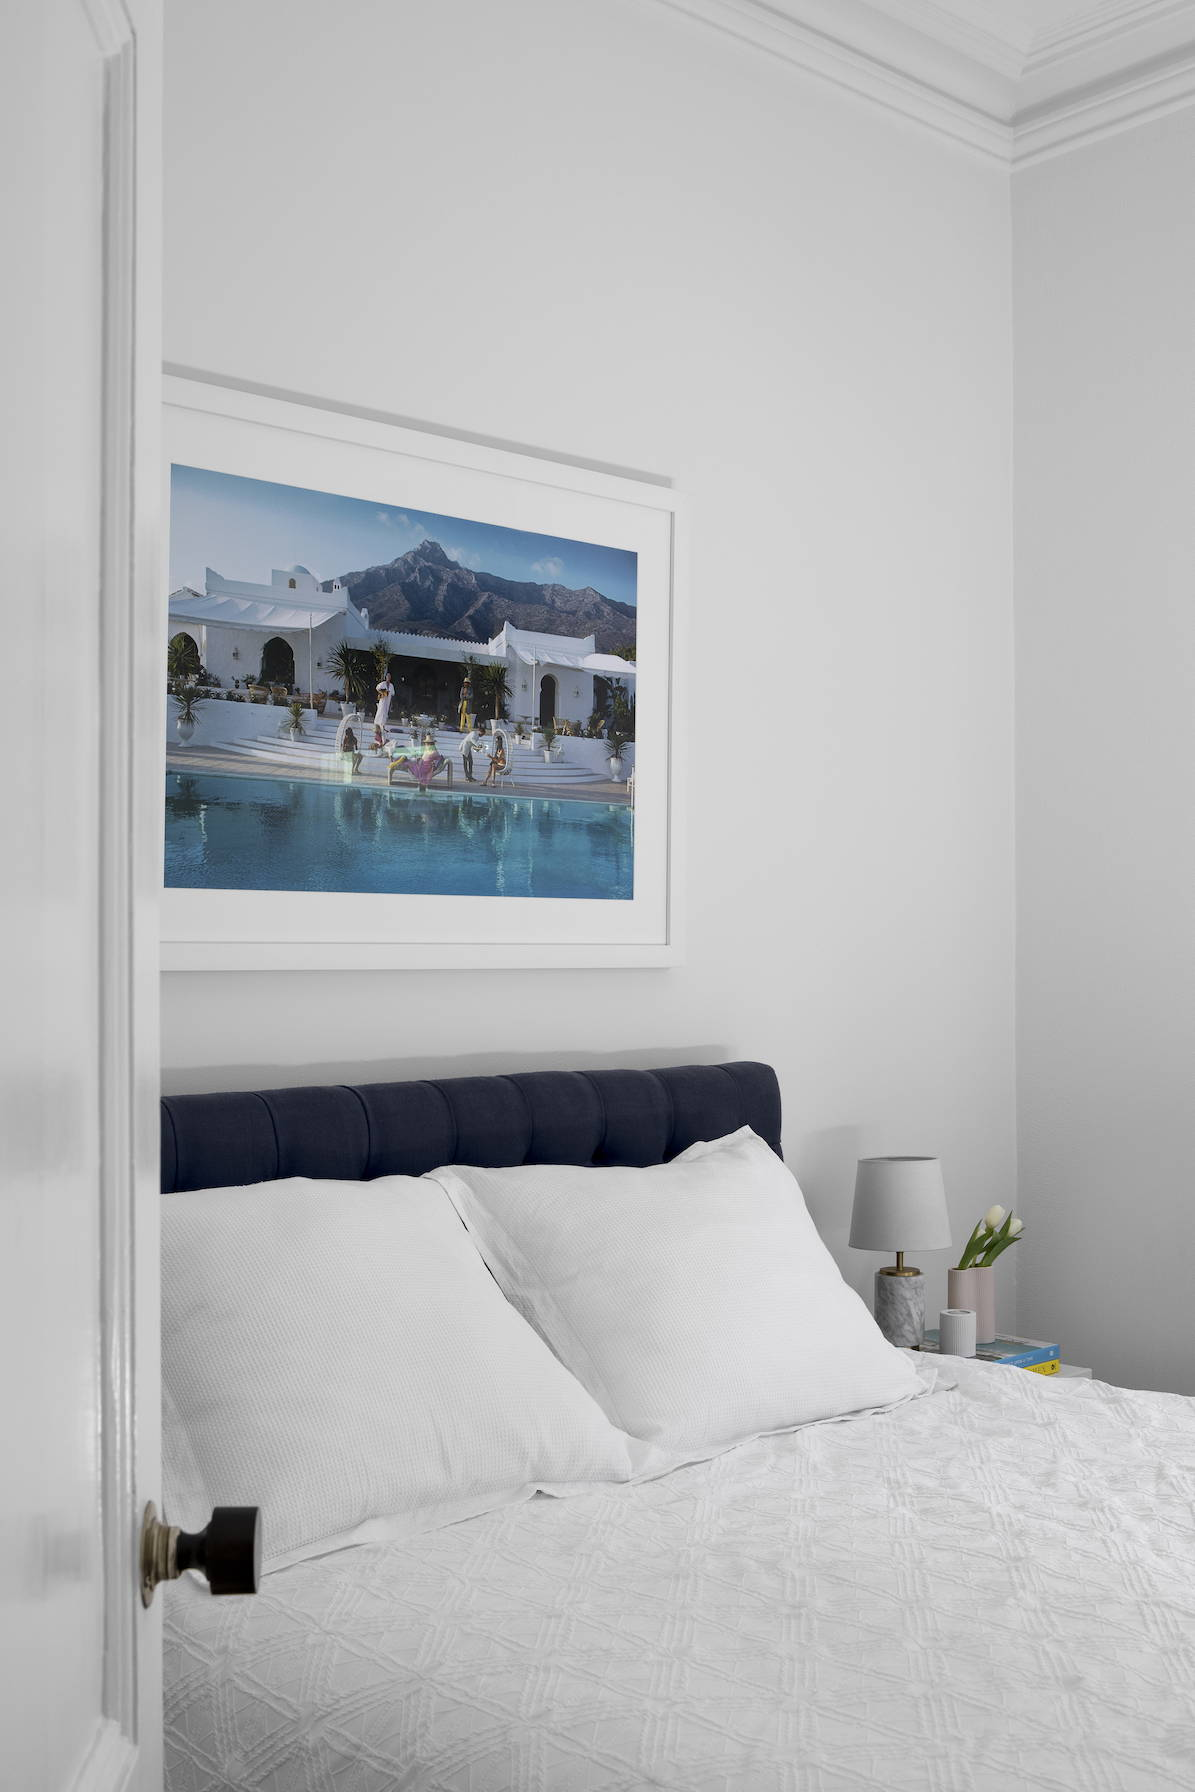 A poolside photograph by Slim Aarons, framed in white in a pretty bedroom setting